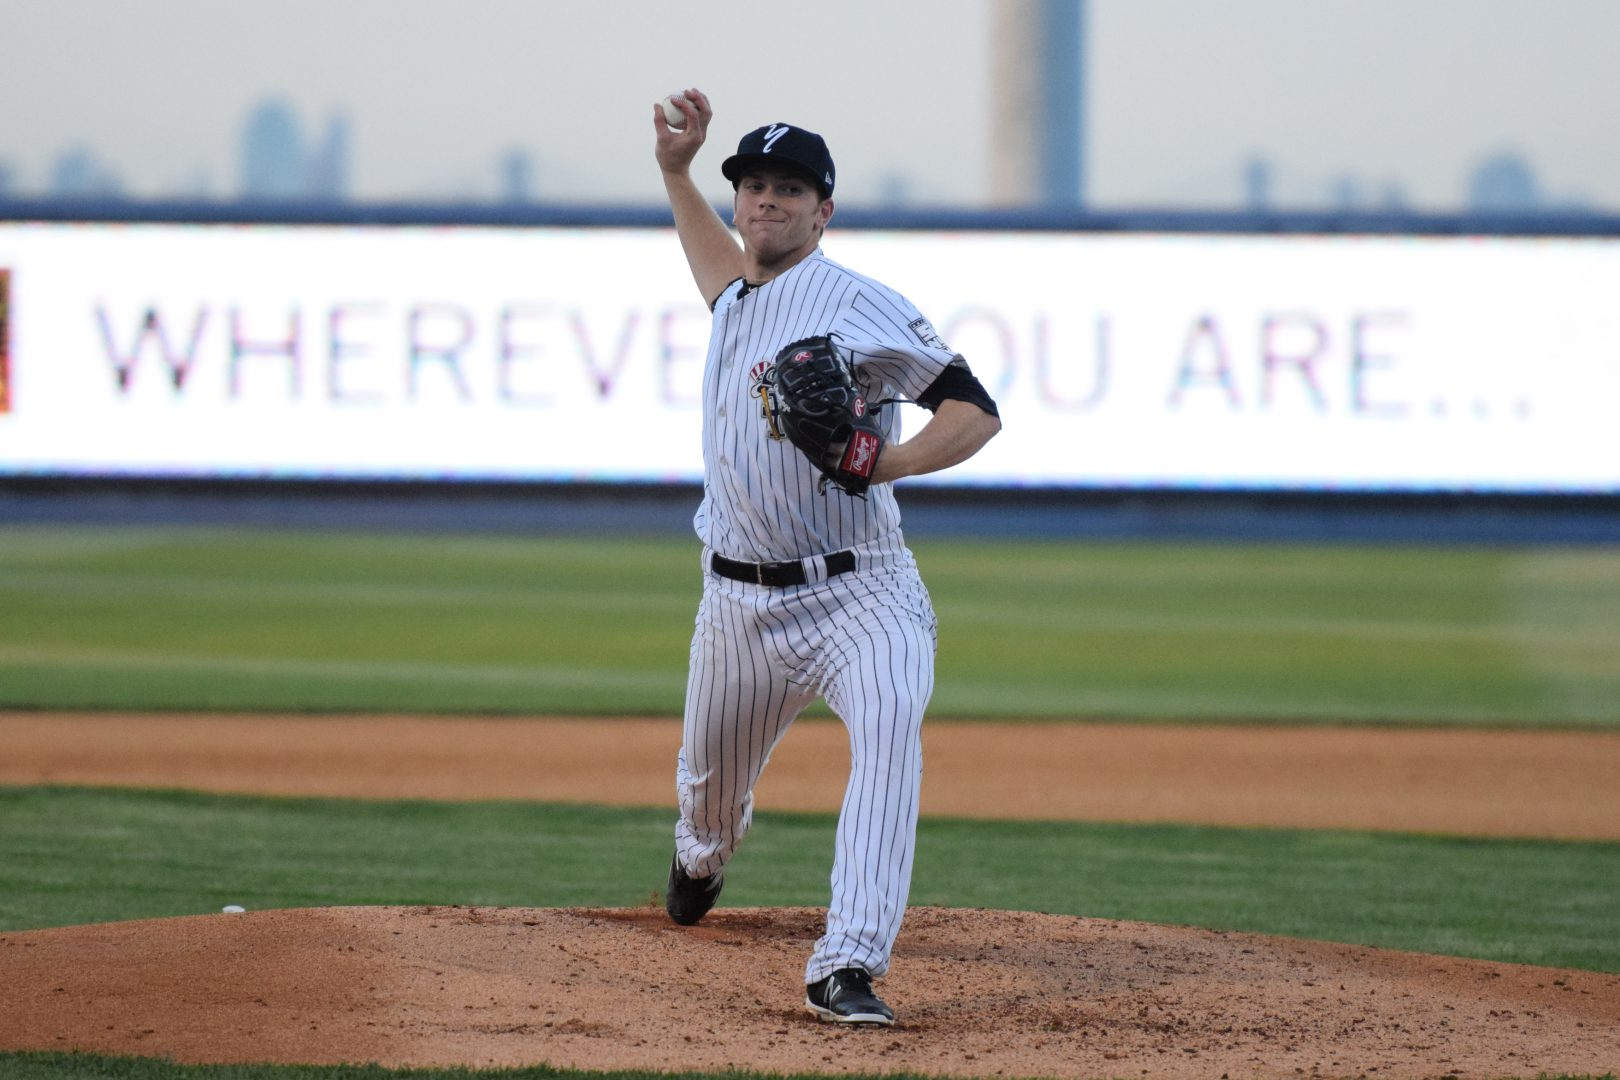 Staten Island Yankees starting pitcher Drew Finley fireing a pitch to the plate in the June 18, 2016 game against the Brooklyn Cyclones. (Robert M. Pimpsner/RMP Sports Media, Inc.)